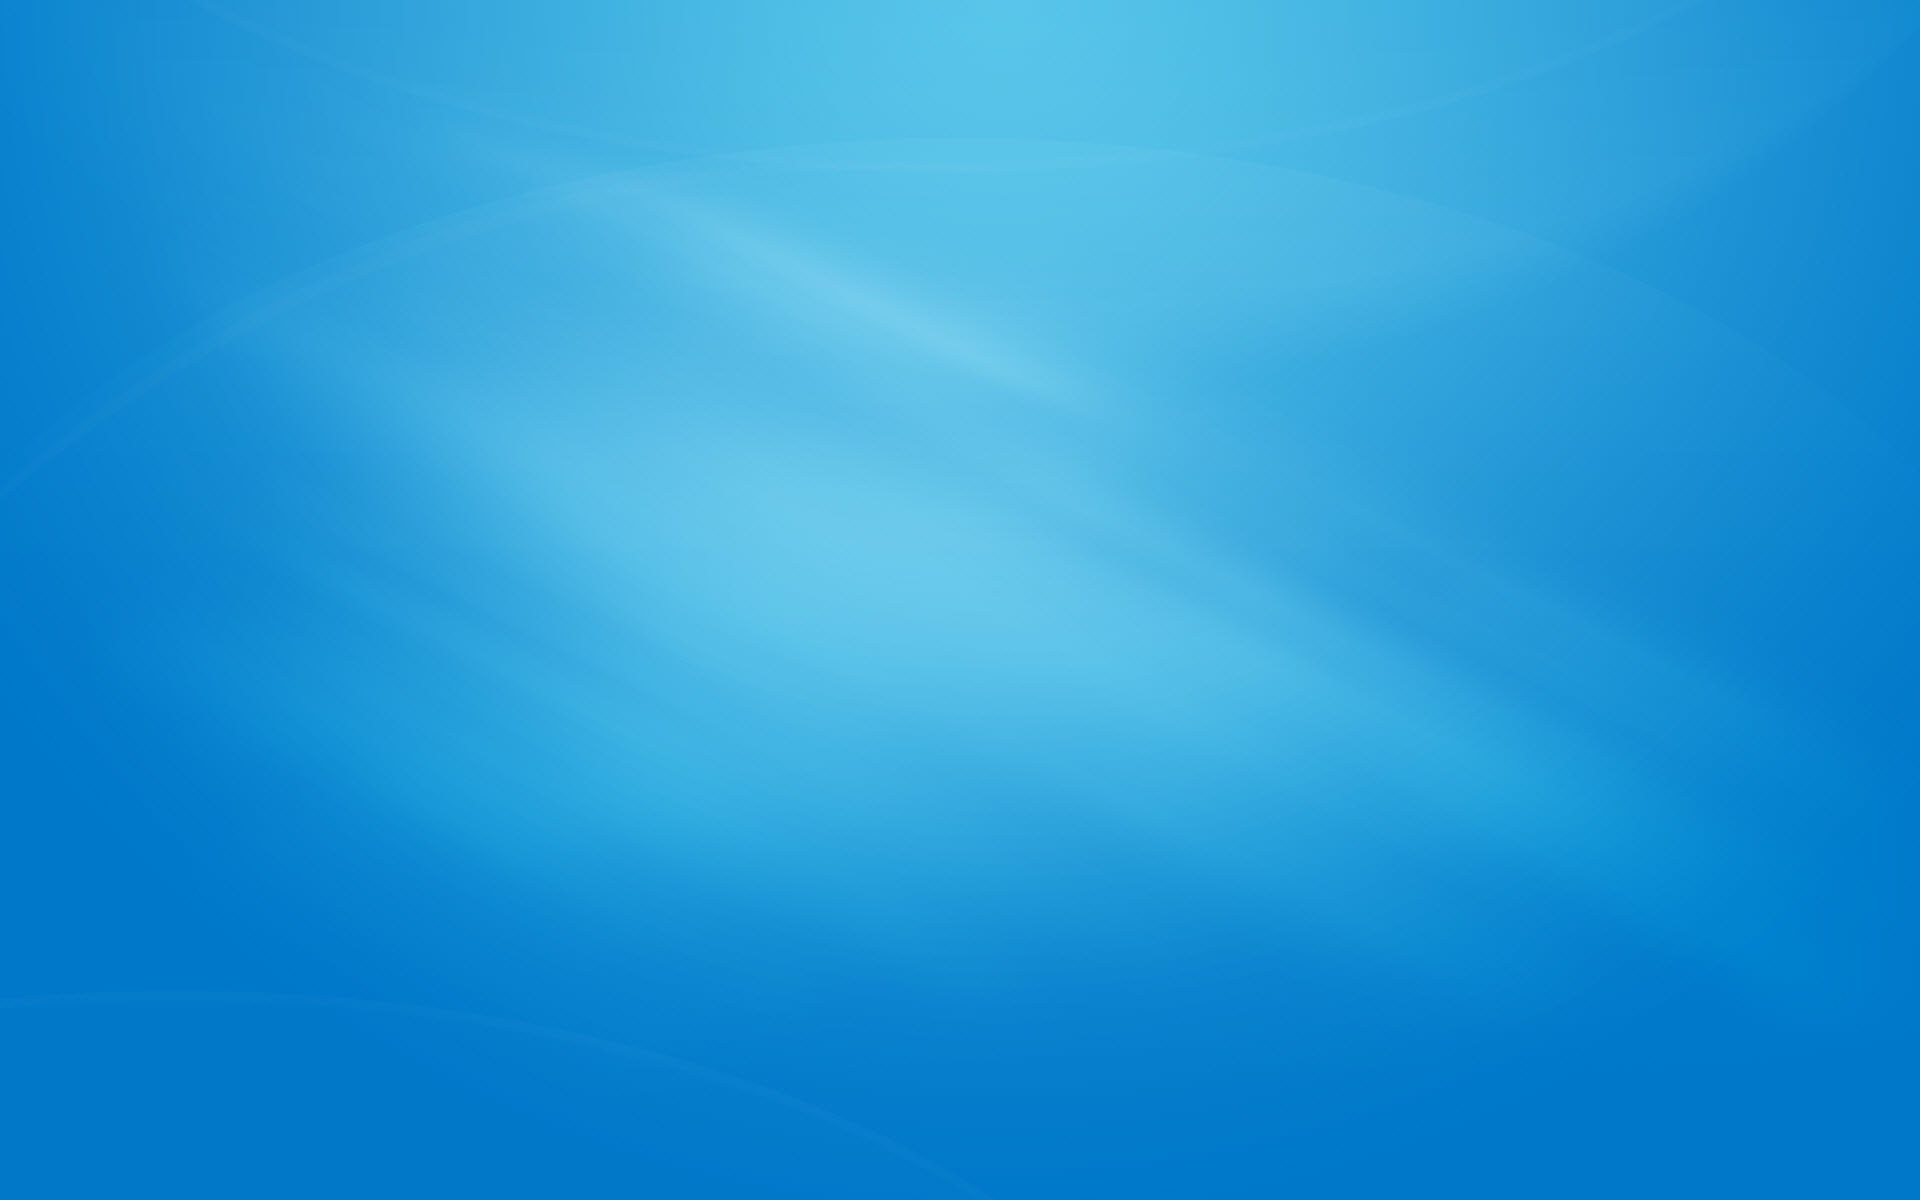 sky-blue-color-wallpaper-4